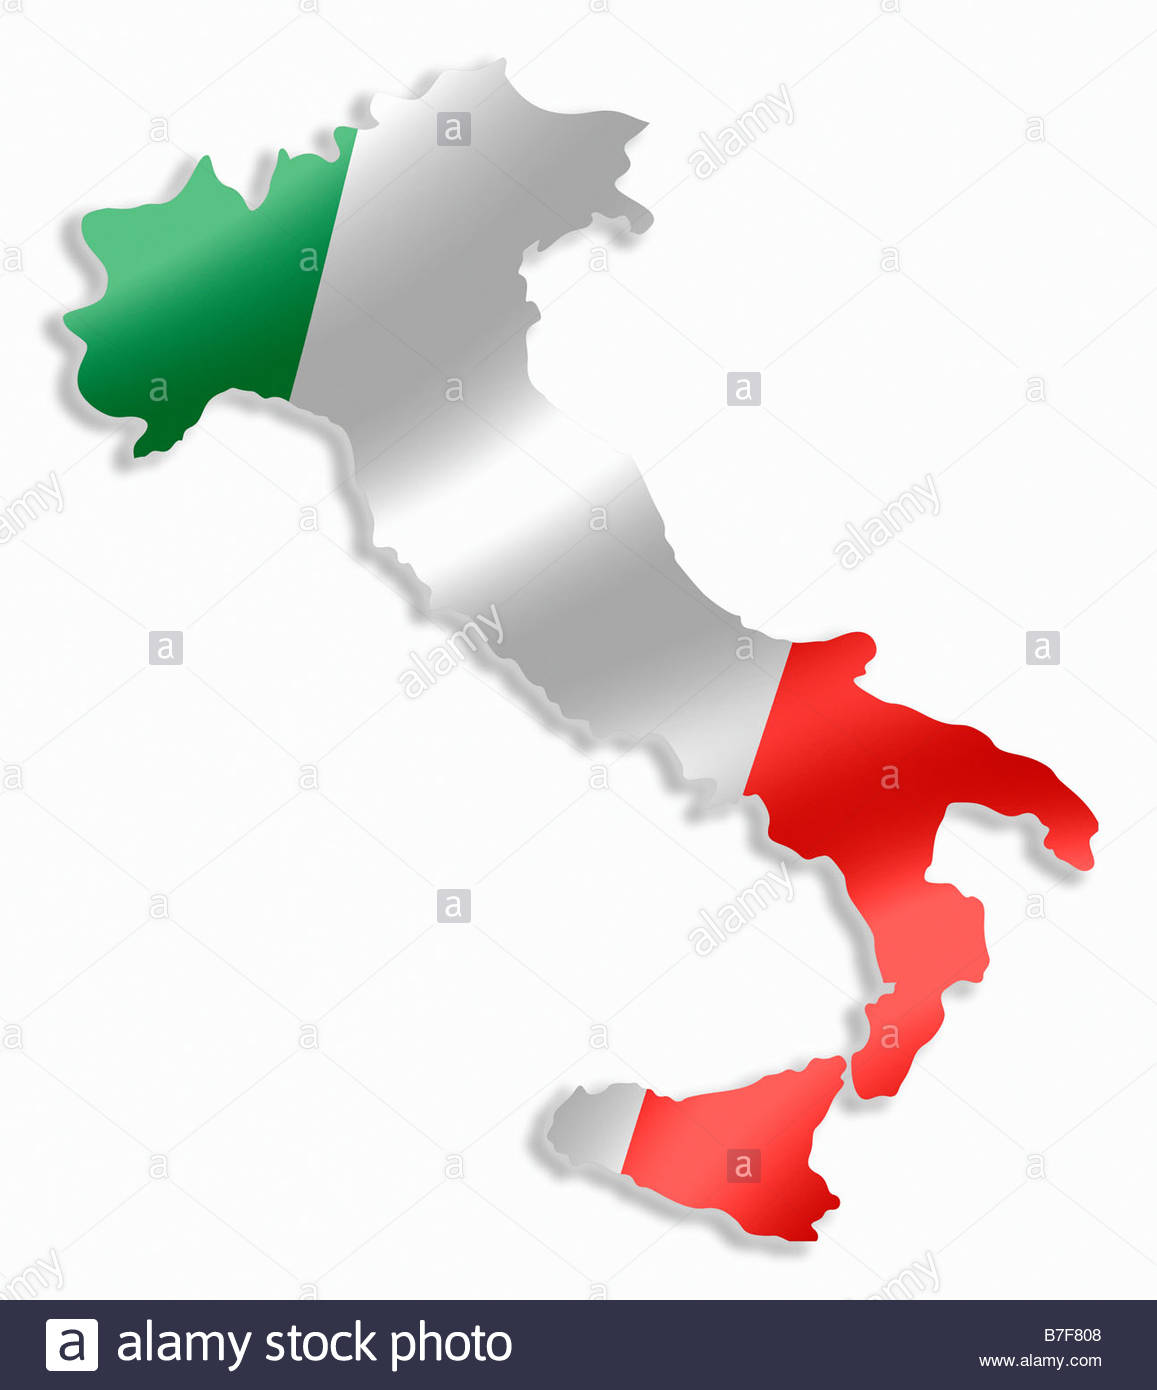 Italy Italian Country Map Outline With National Flag Inside Stock